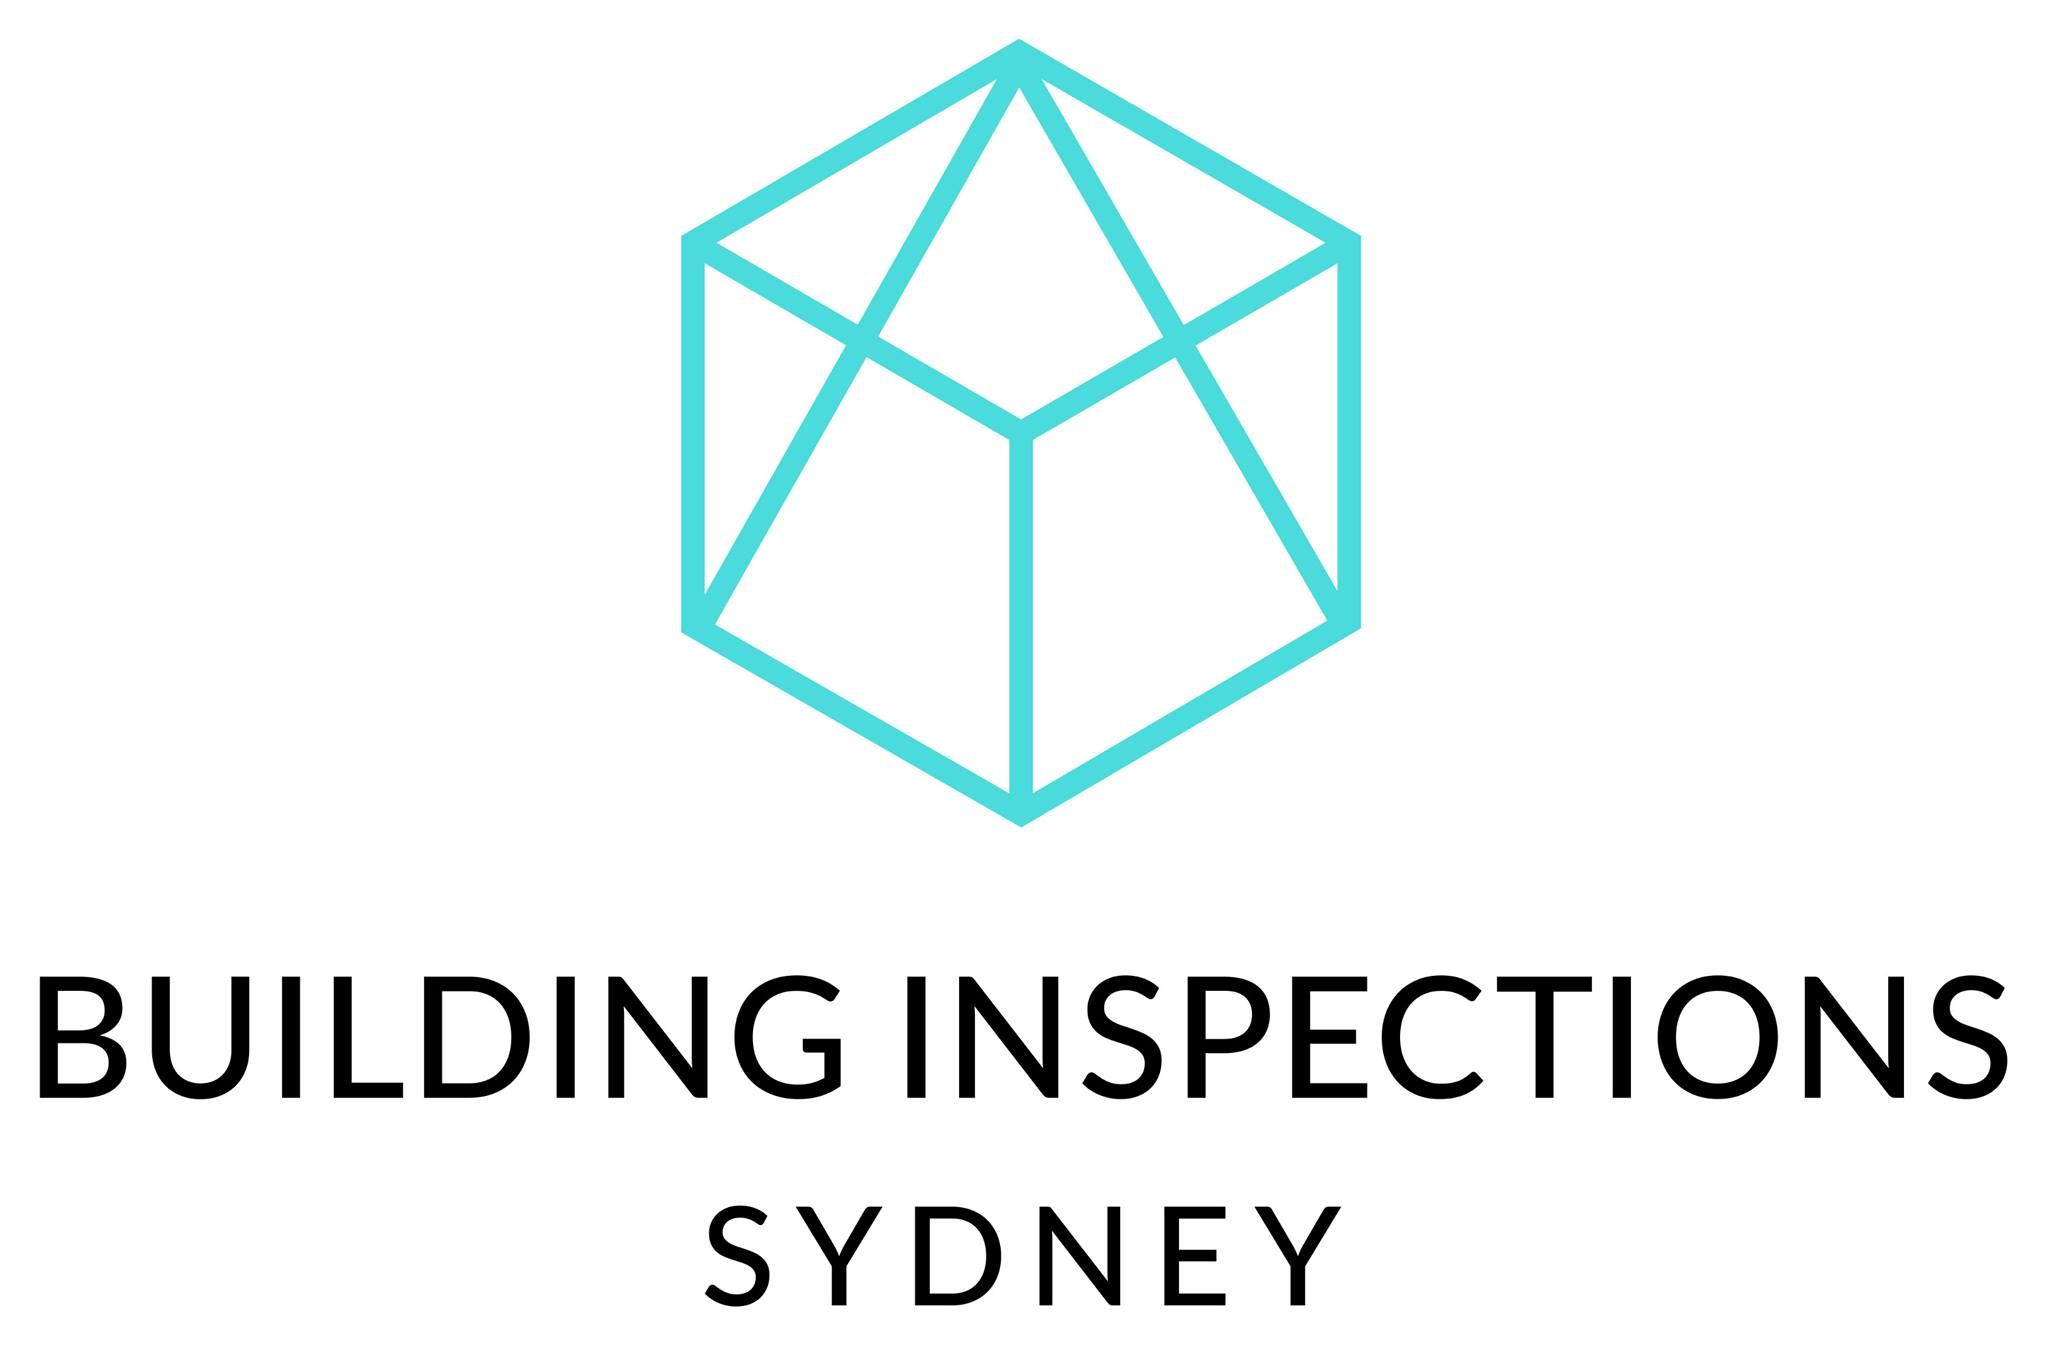 Building Inspections Sydney